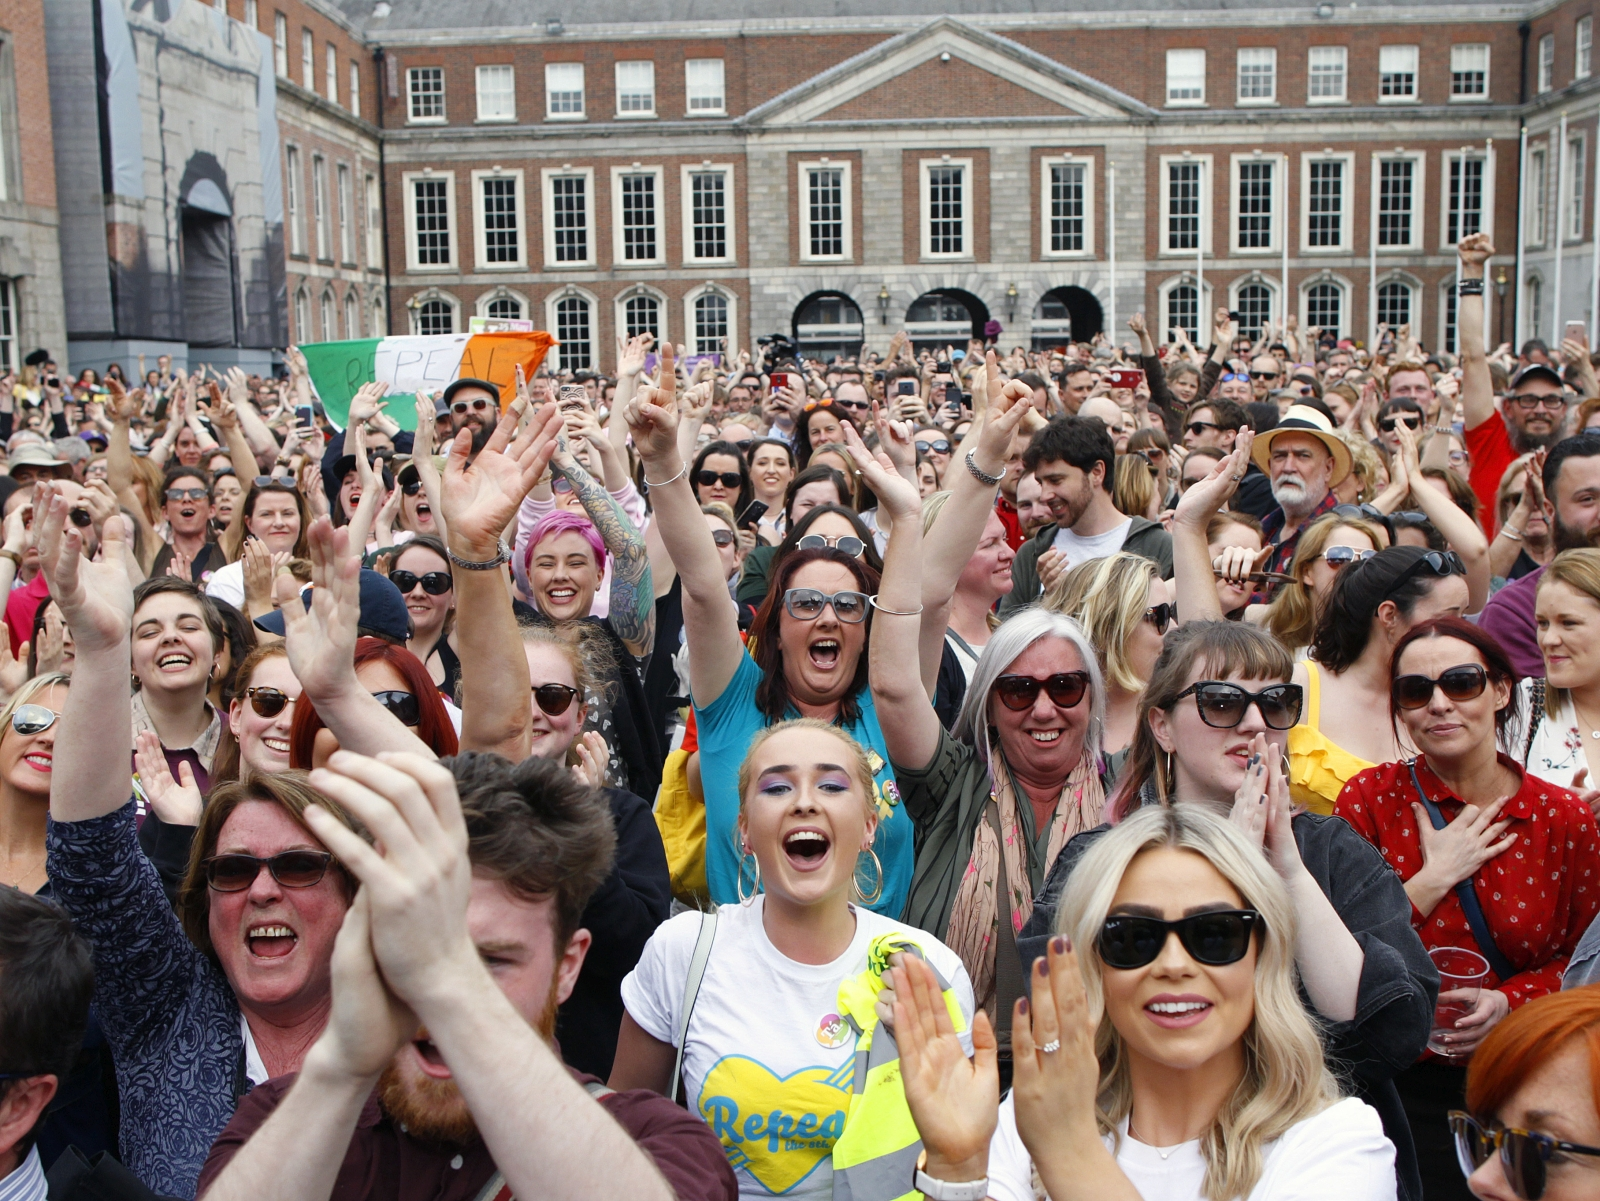 People from the 'Yes' campaign react as the results of the votes begin to come in the Irish referendum on the 8th Amendment of the Irish Constitution at Dublin Castle, in Dublin, Ireland, Saturday May 26, 2018. Abortion rights activists proclaimed victory for Irish women Saturday as referendum results indicated voters in largely Roman Catholic Ireland overwhelmingly backed repealing a 1983 constitutional ban on abortions. (AP Photo/Peter Morrison)